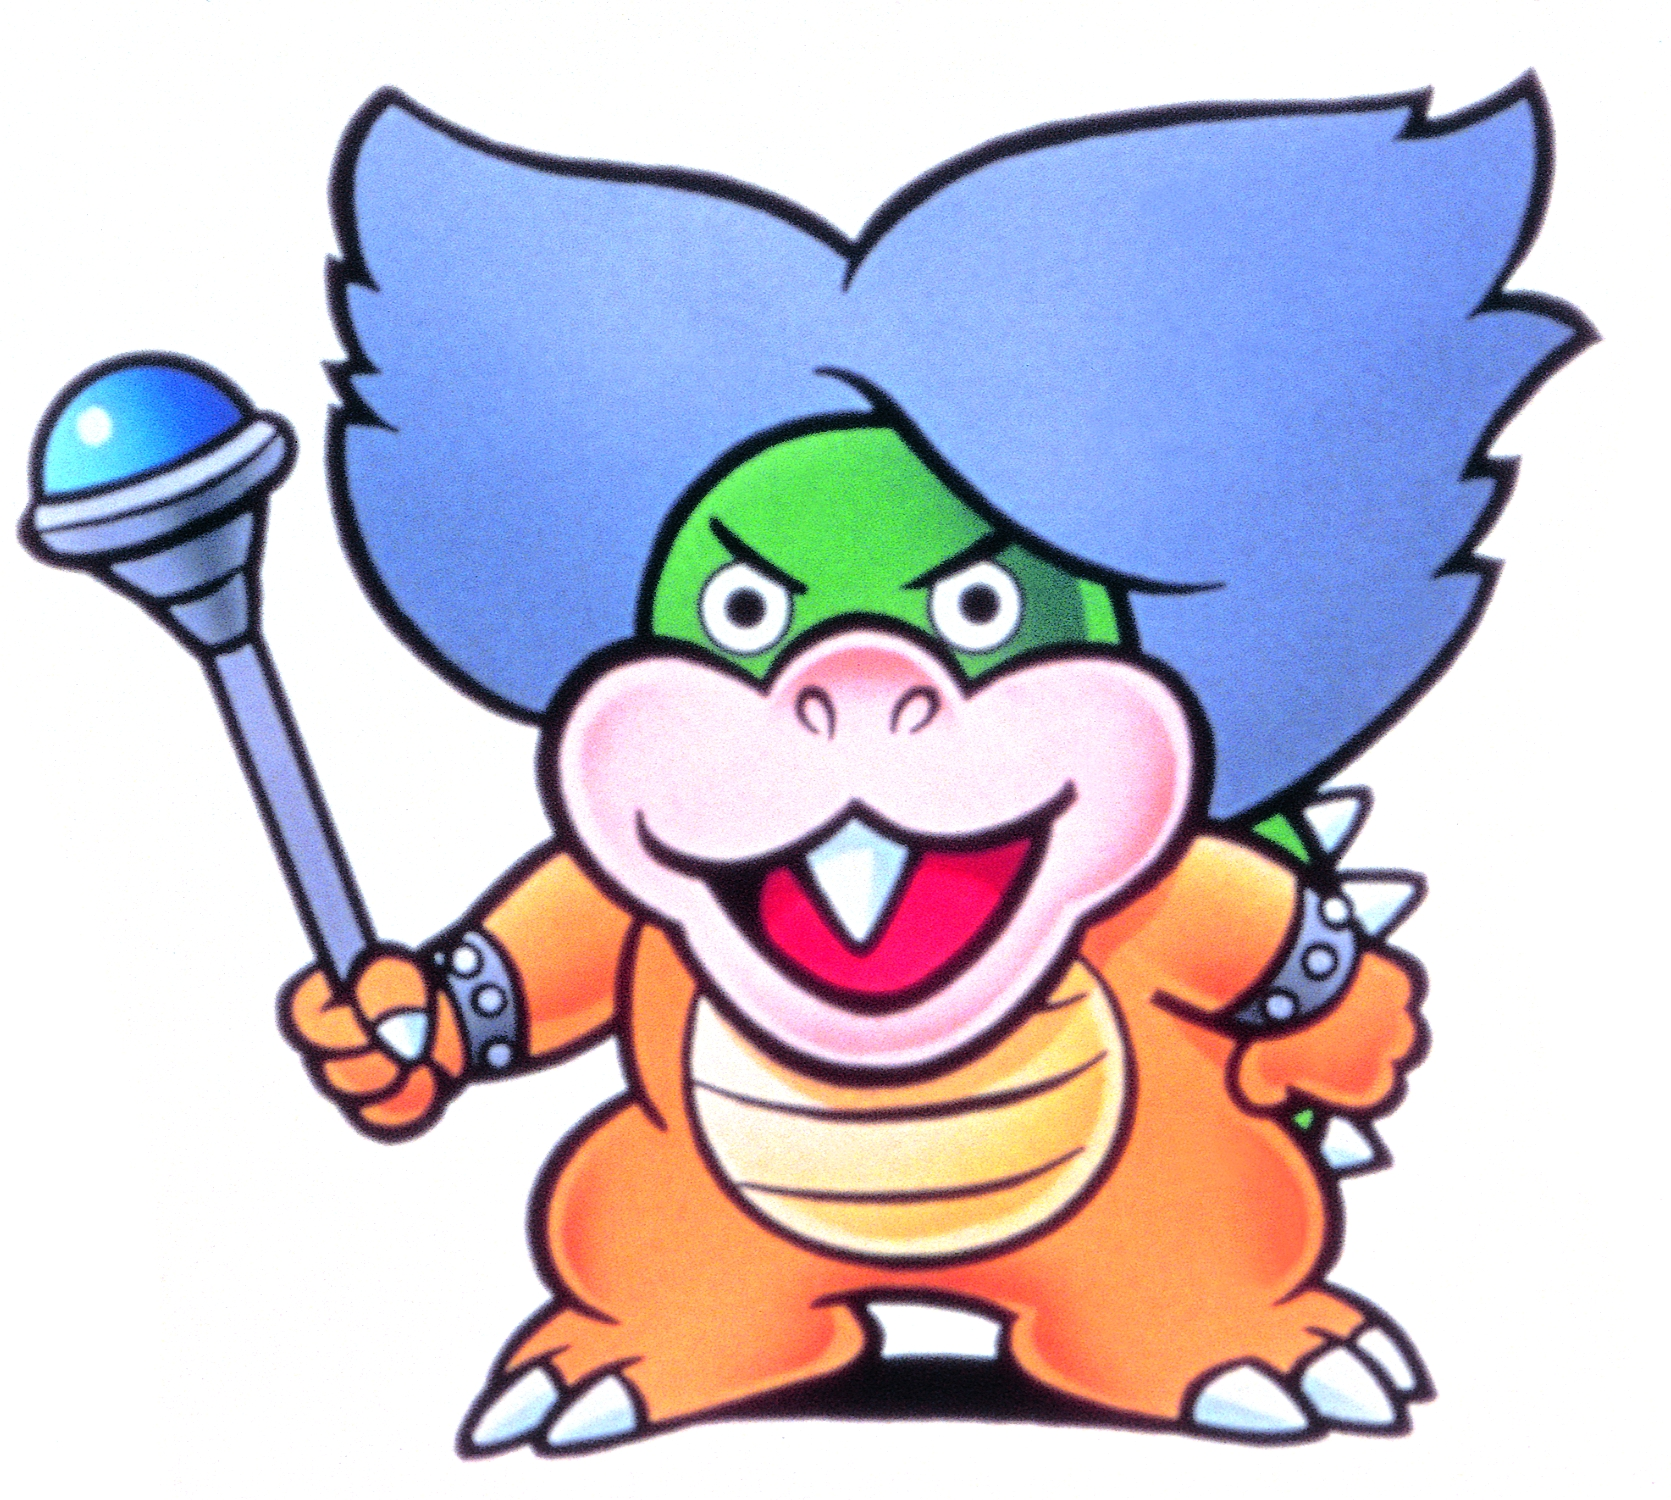 http://www.mariowiki.com/images/c/c4/SMB3_LudwigVonKoopa.jpg